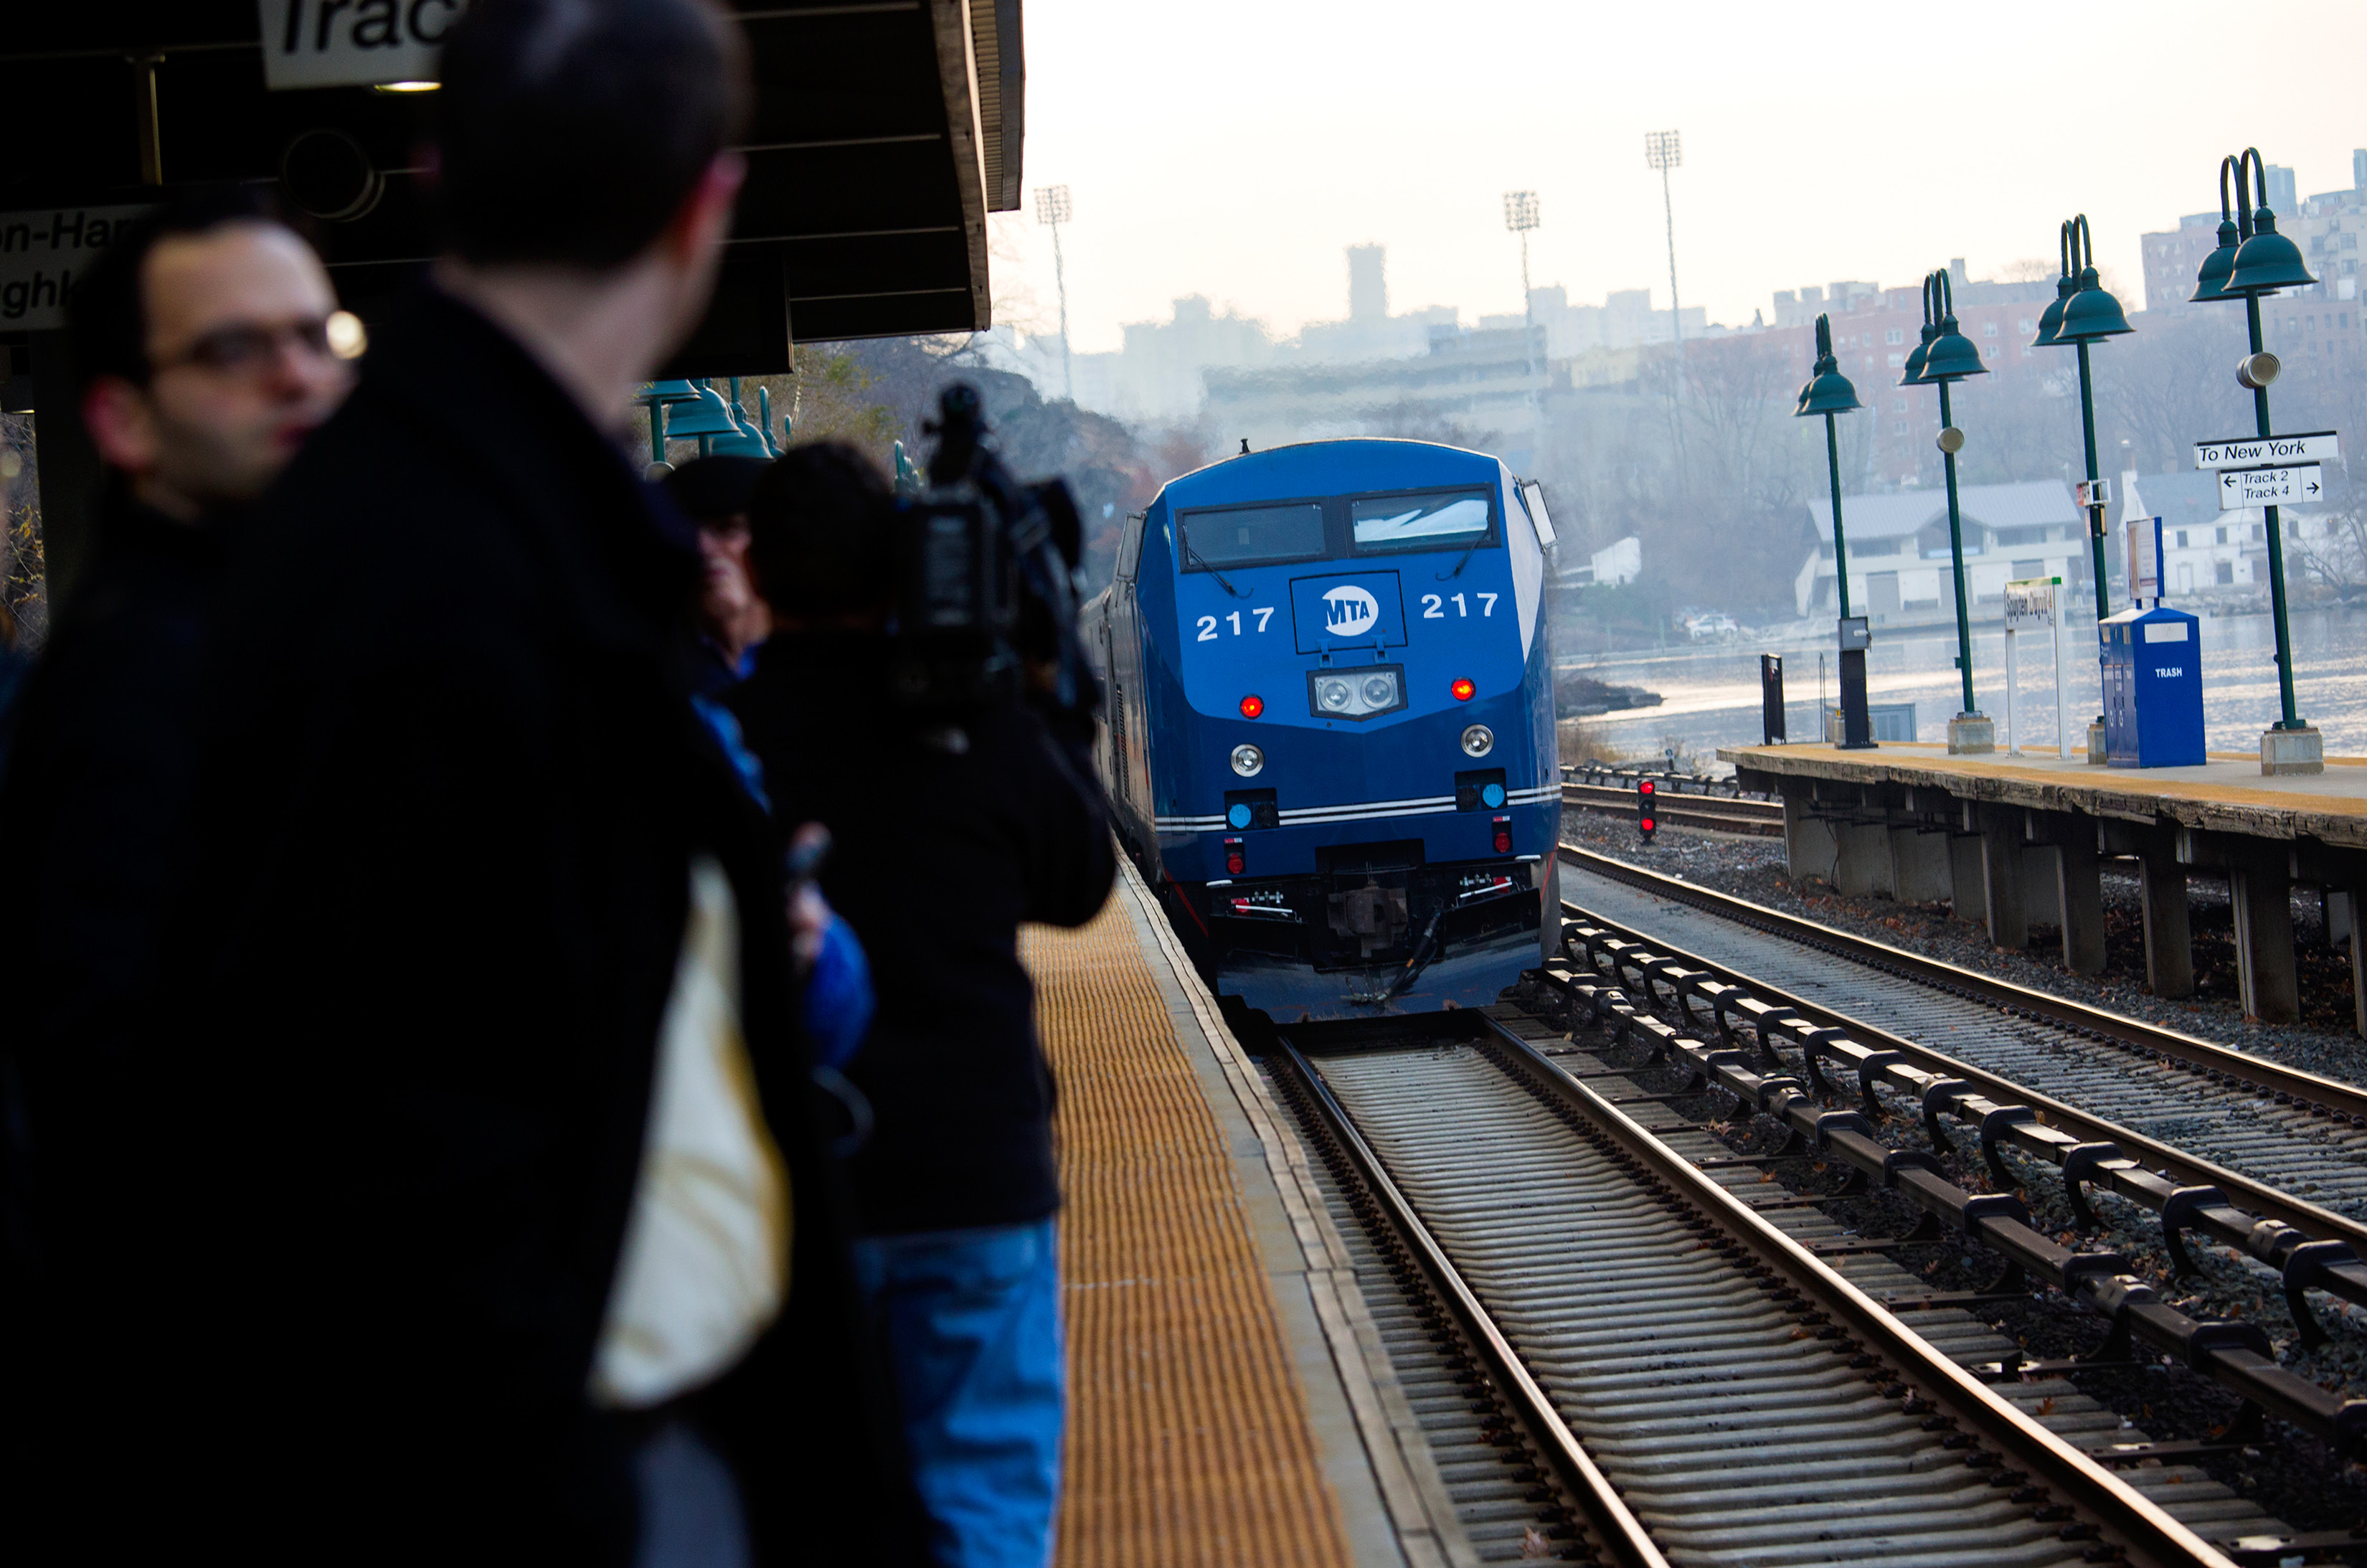 A Metro-North passenger train that is pushed by a locomotive rolls through the Spuyten Duyvil station in the Bronx borough of New York Wednesday, Dec. 4, 2013, not far from the area where a fatal derailment disrupted service on the Hudson Line of the railroad Sunday, Dec. 1. The line was running at ninety eight percent capacity today, according to Metro-North. (AP Photo/Craig Ruttle)